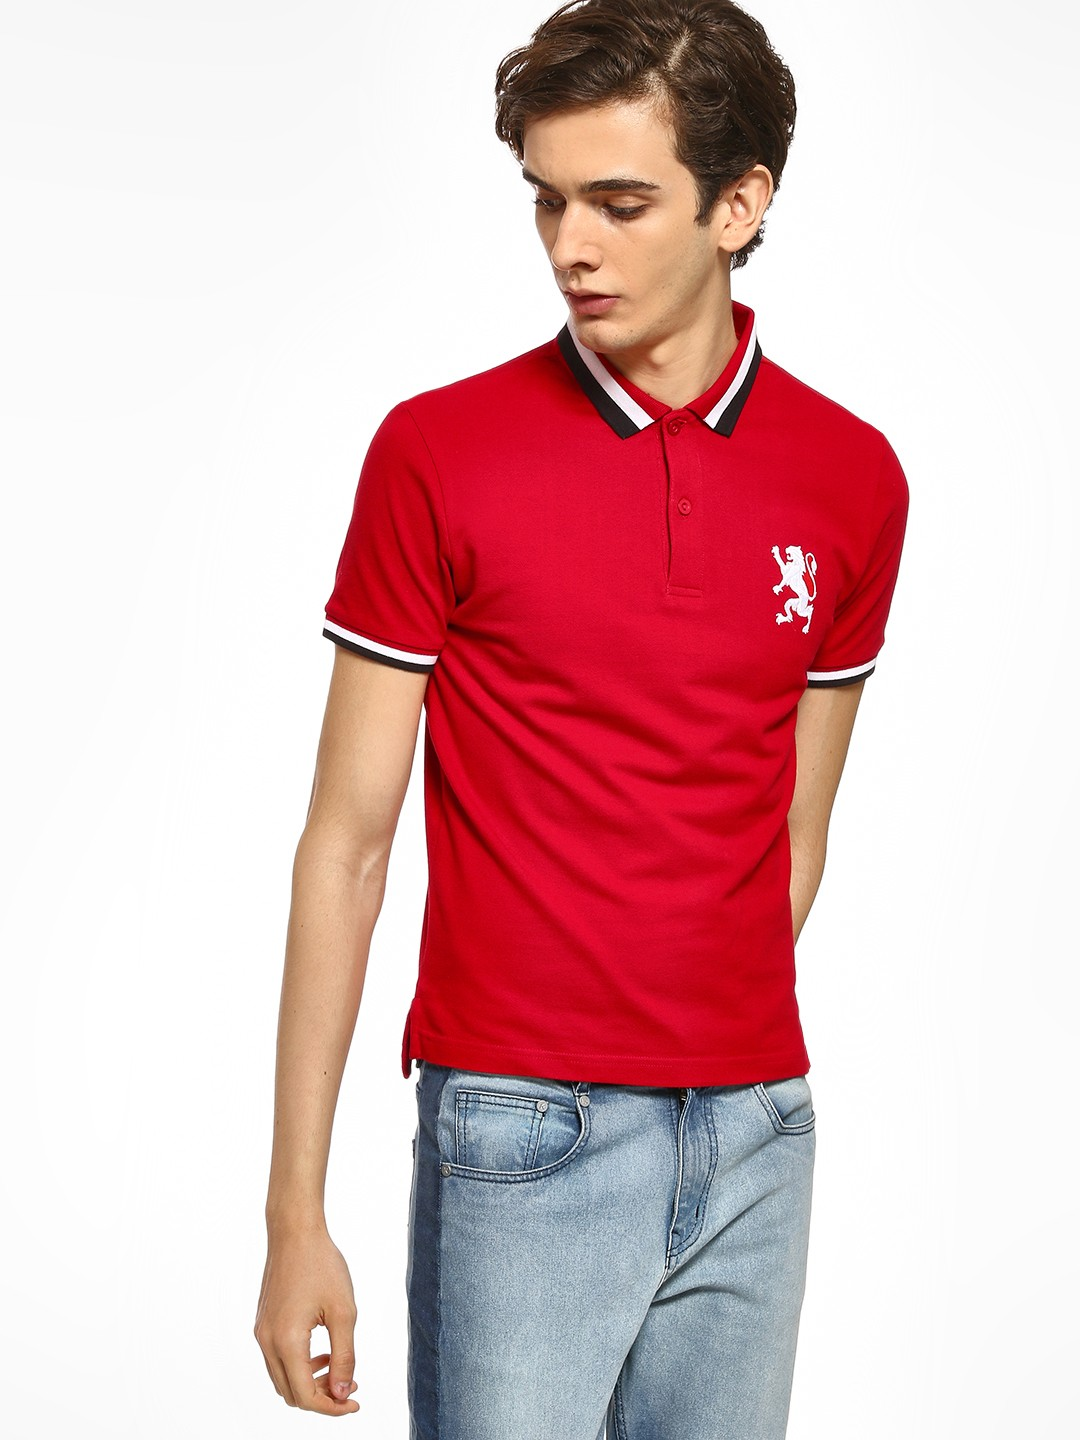 Giordano Red Embroidered Logo Polo Shirt 1